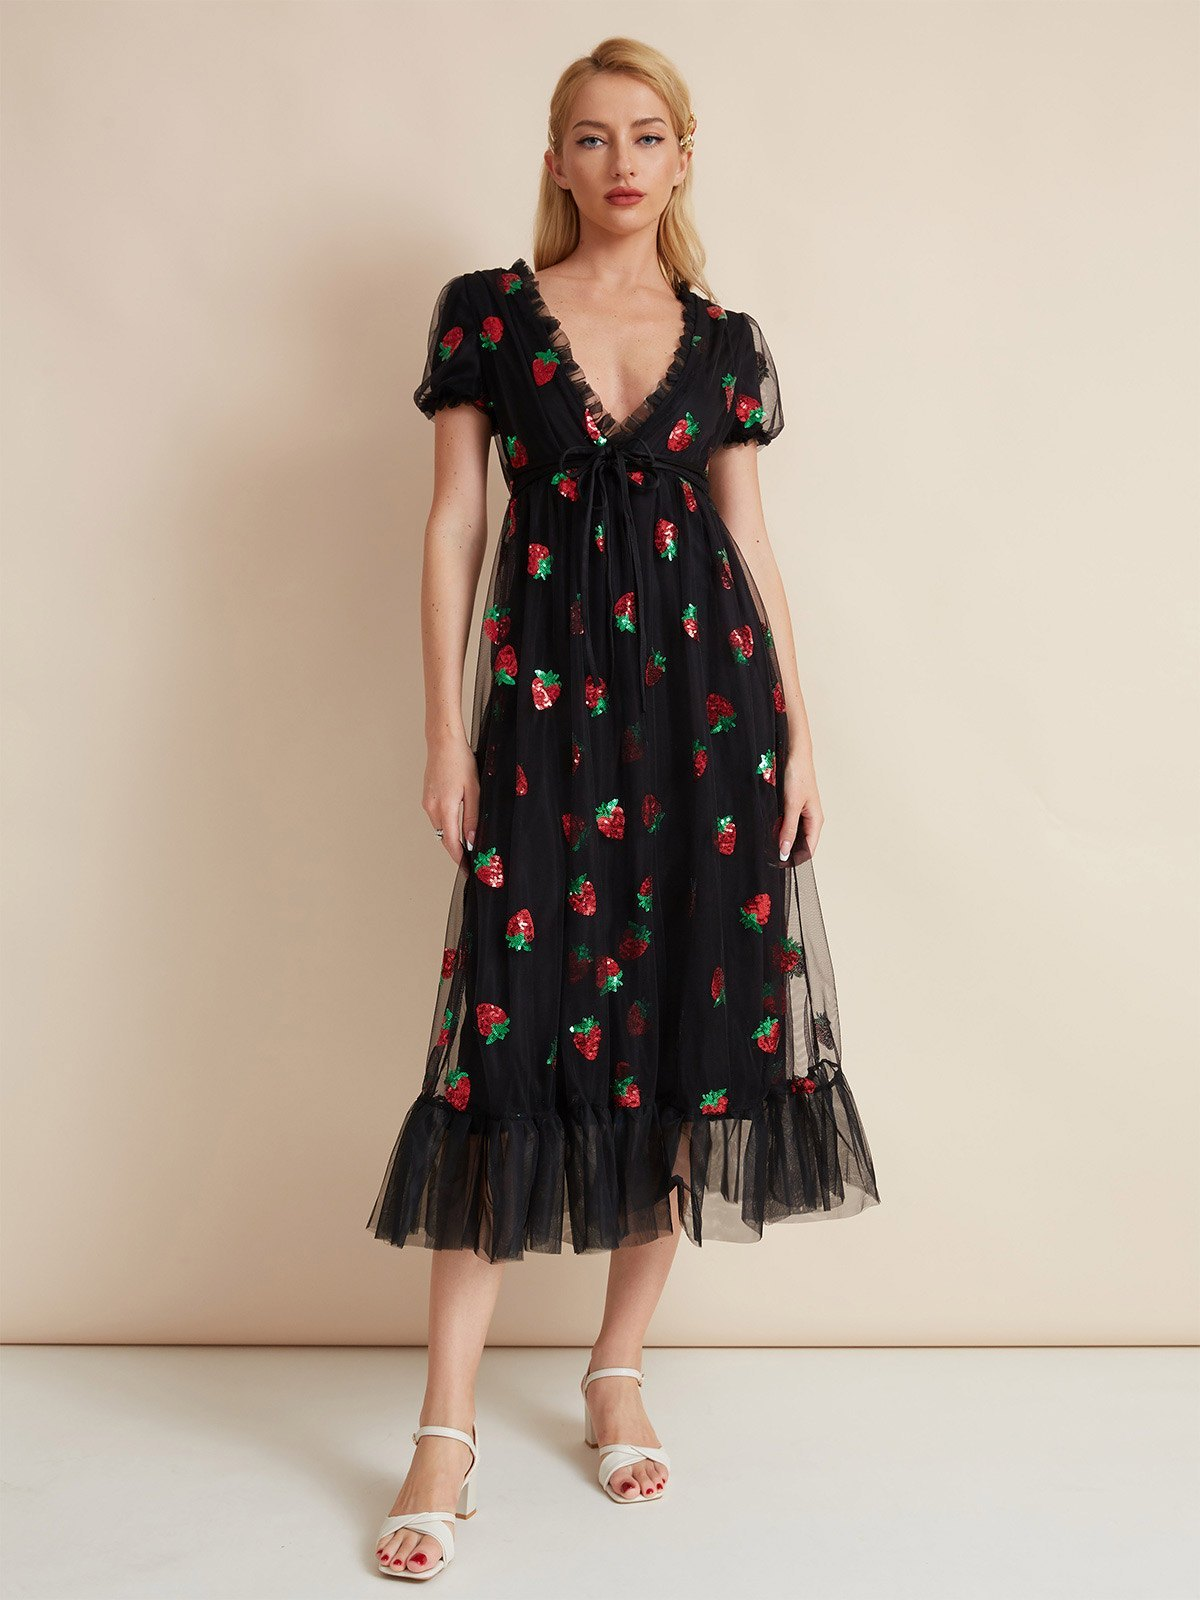 Sequined Strawberry Mesh Pleated Maxi Dress - Black XL